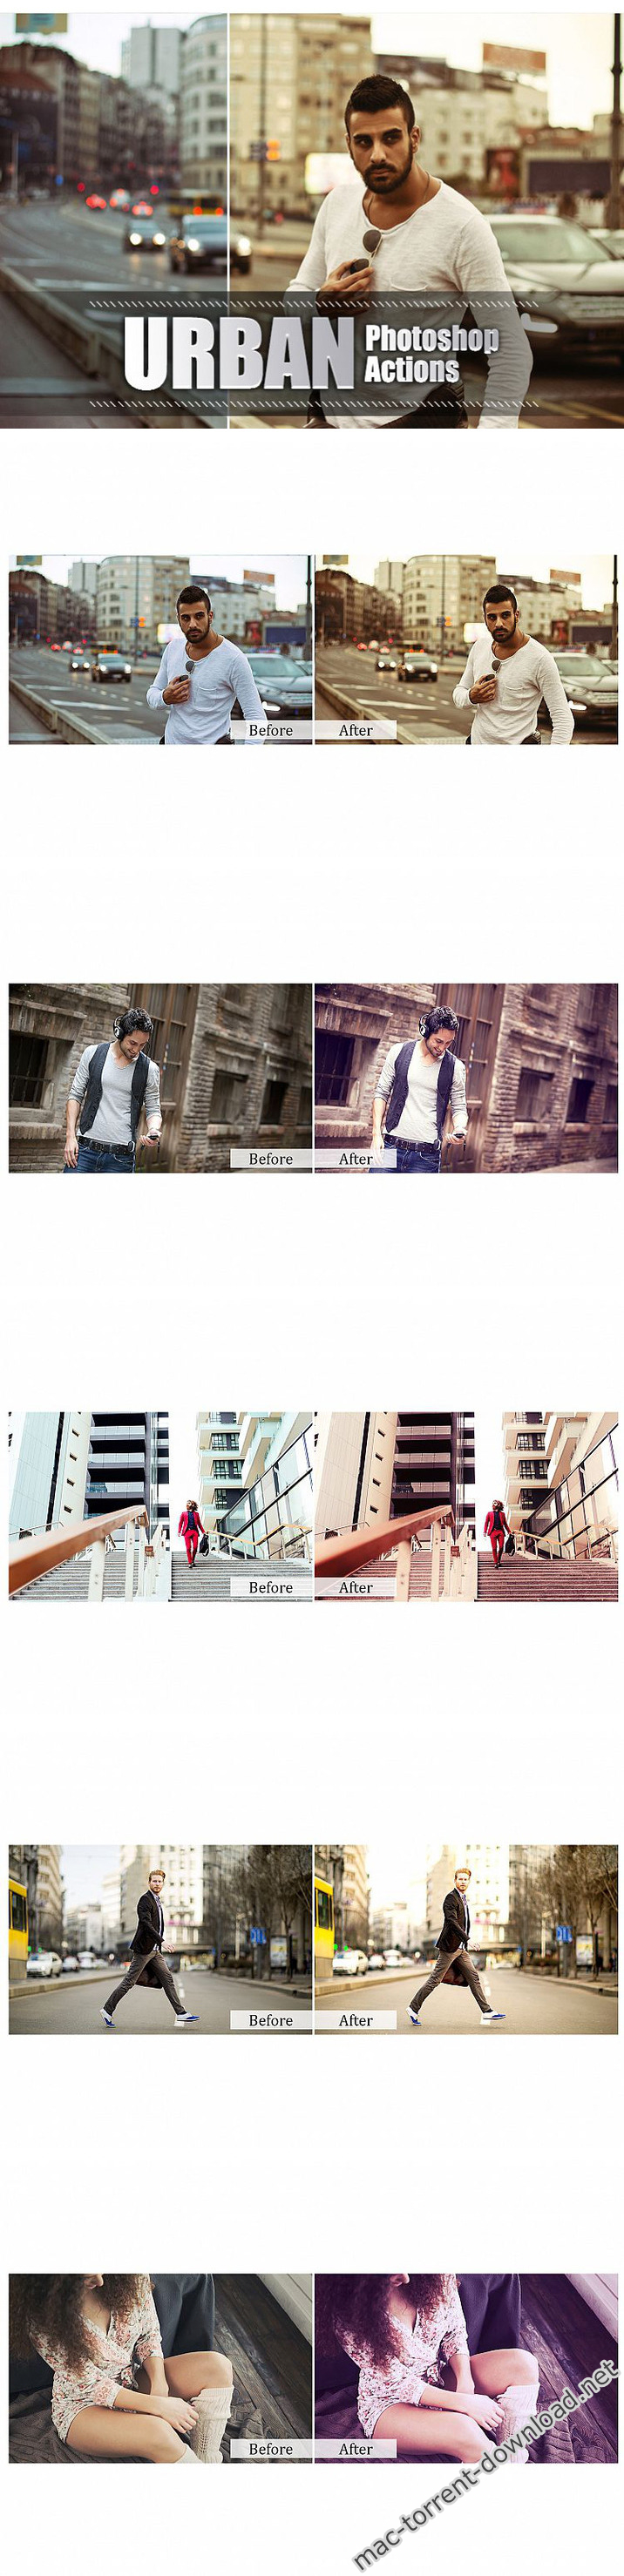 60_urban_photoshop_actions_vol2